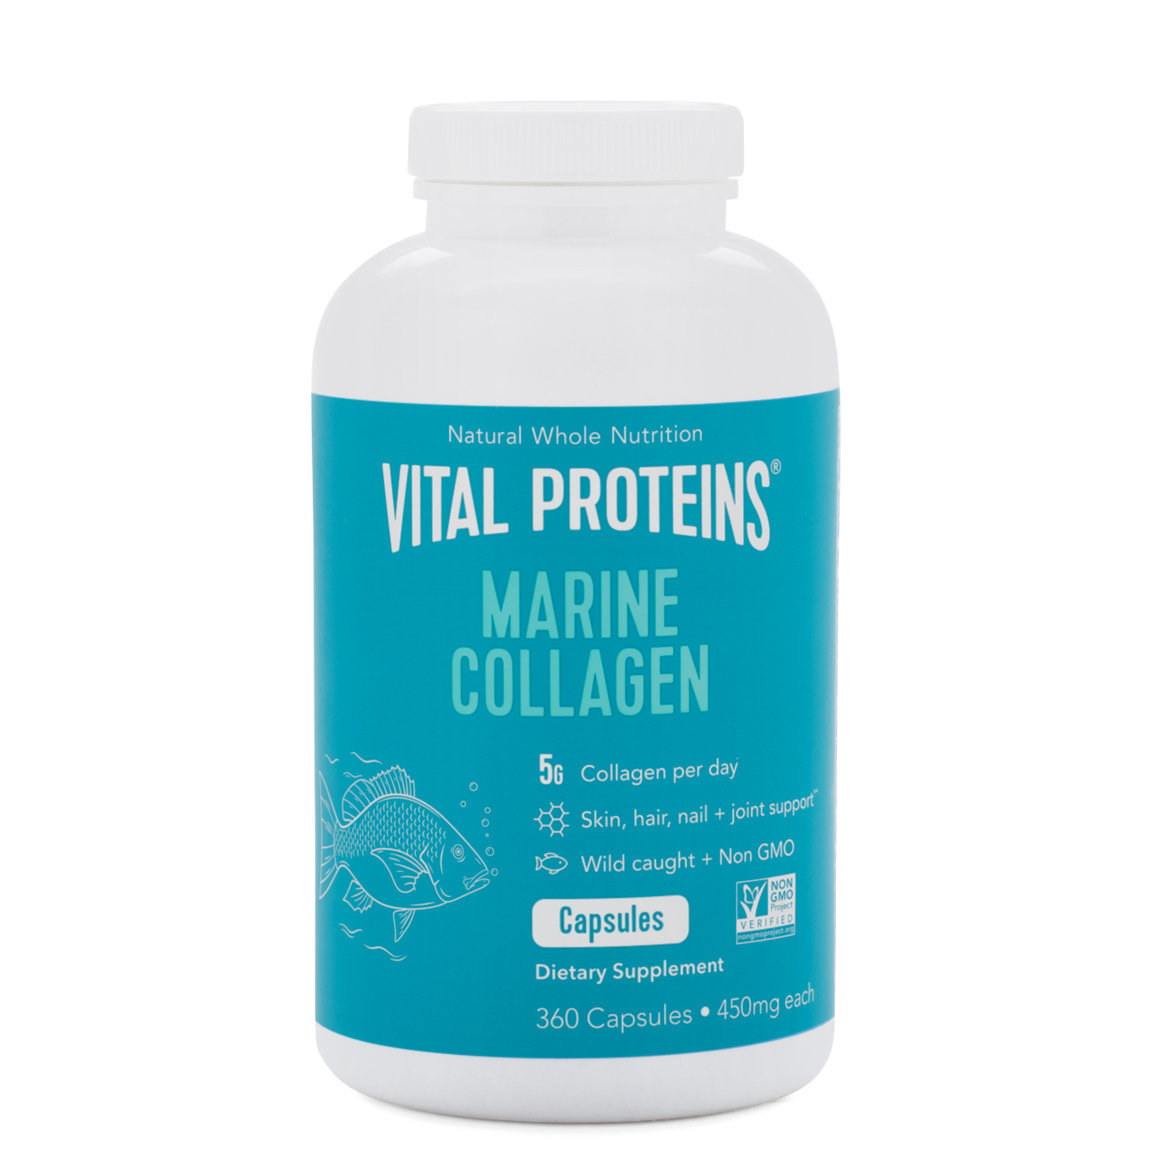 Vital Proteins Marine Collagen Capsules product swatch.